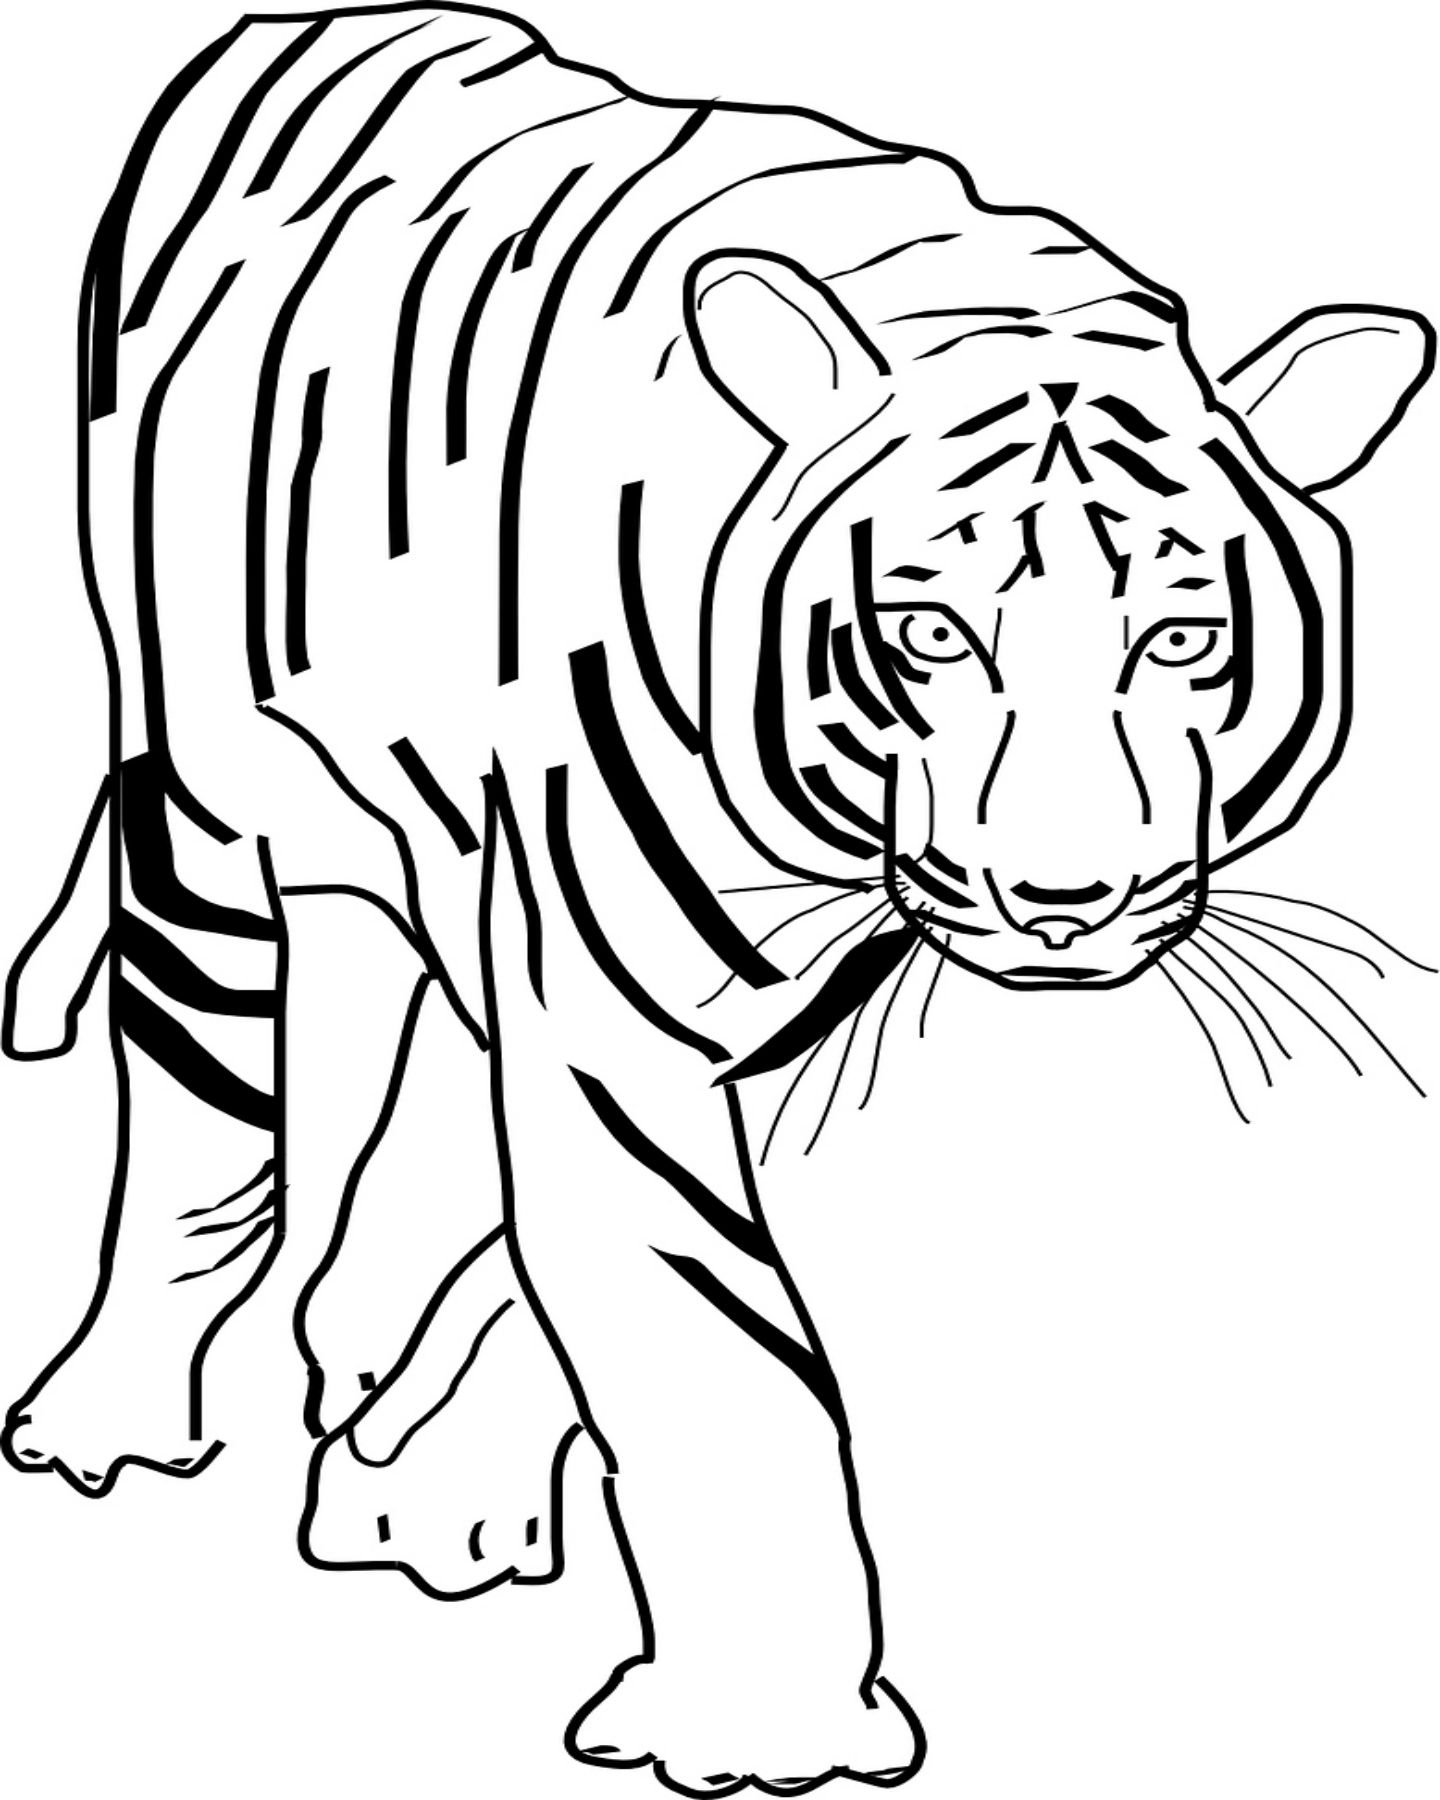 Realistic Tiger Coloring Page | Kids Corner